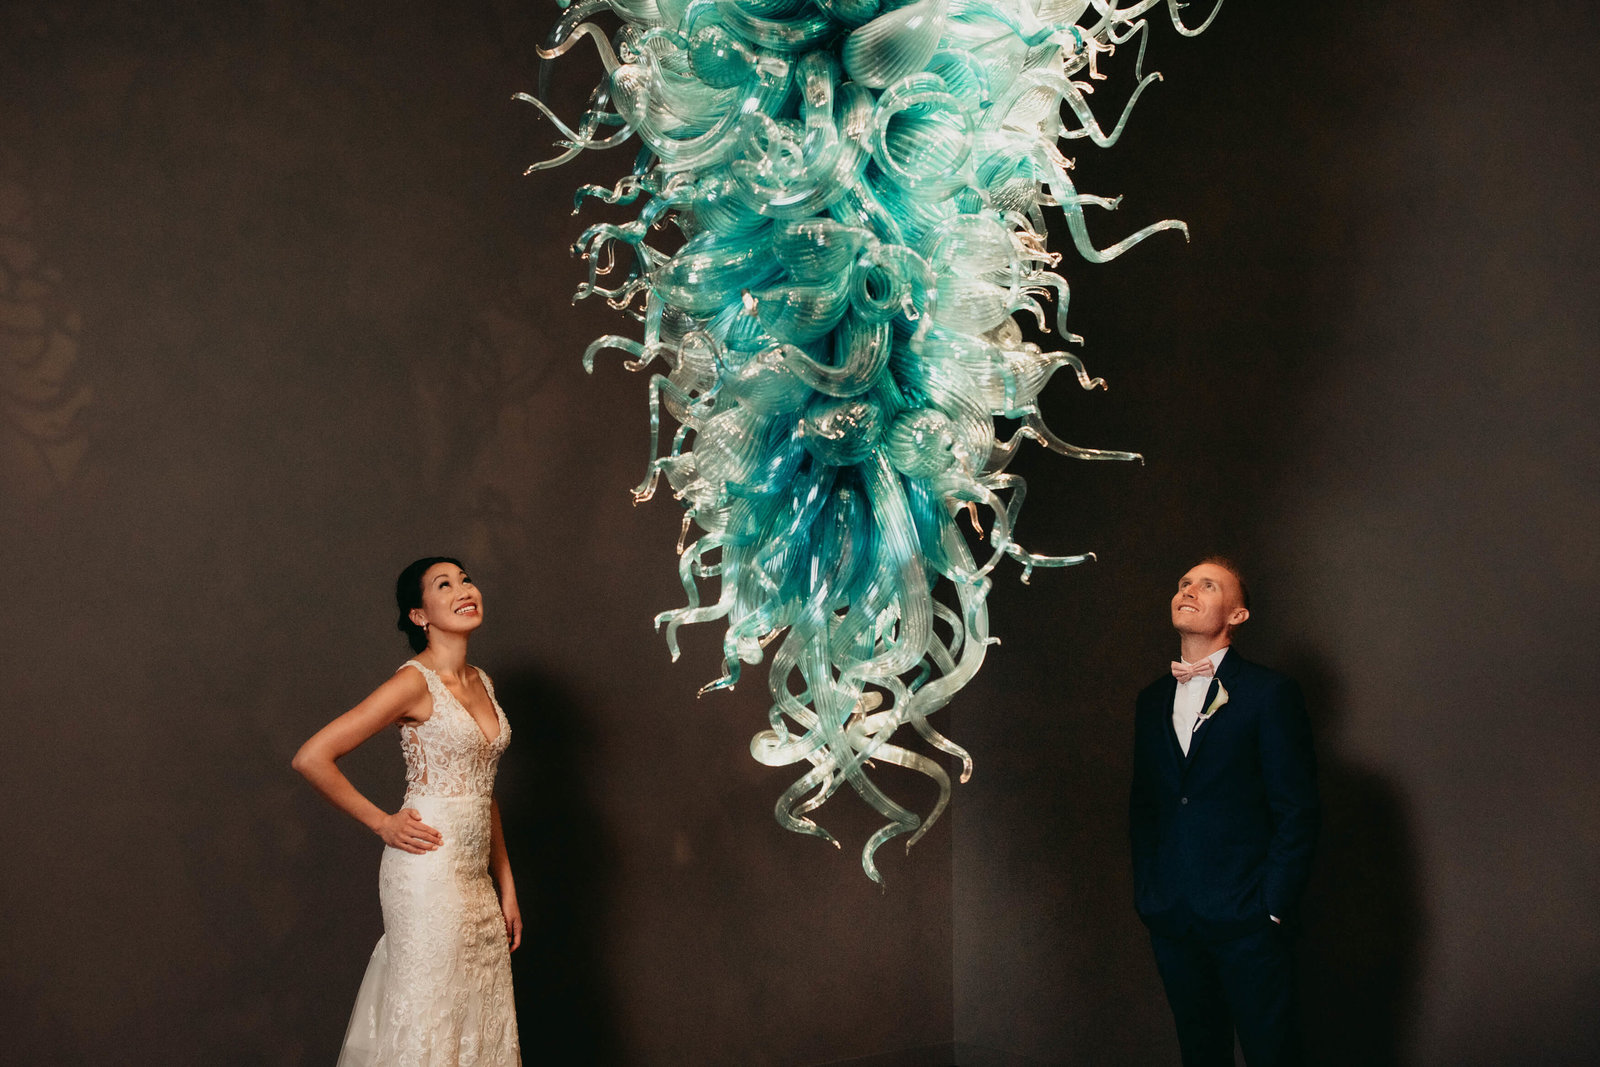 chihuly-garden-and-glass-wedding-sharel-eric-by-Adina-Preston-Photography-2019-377 2